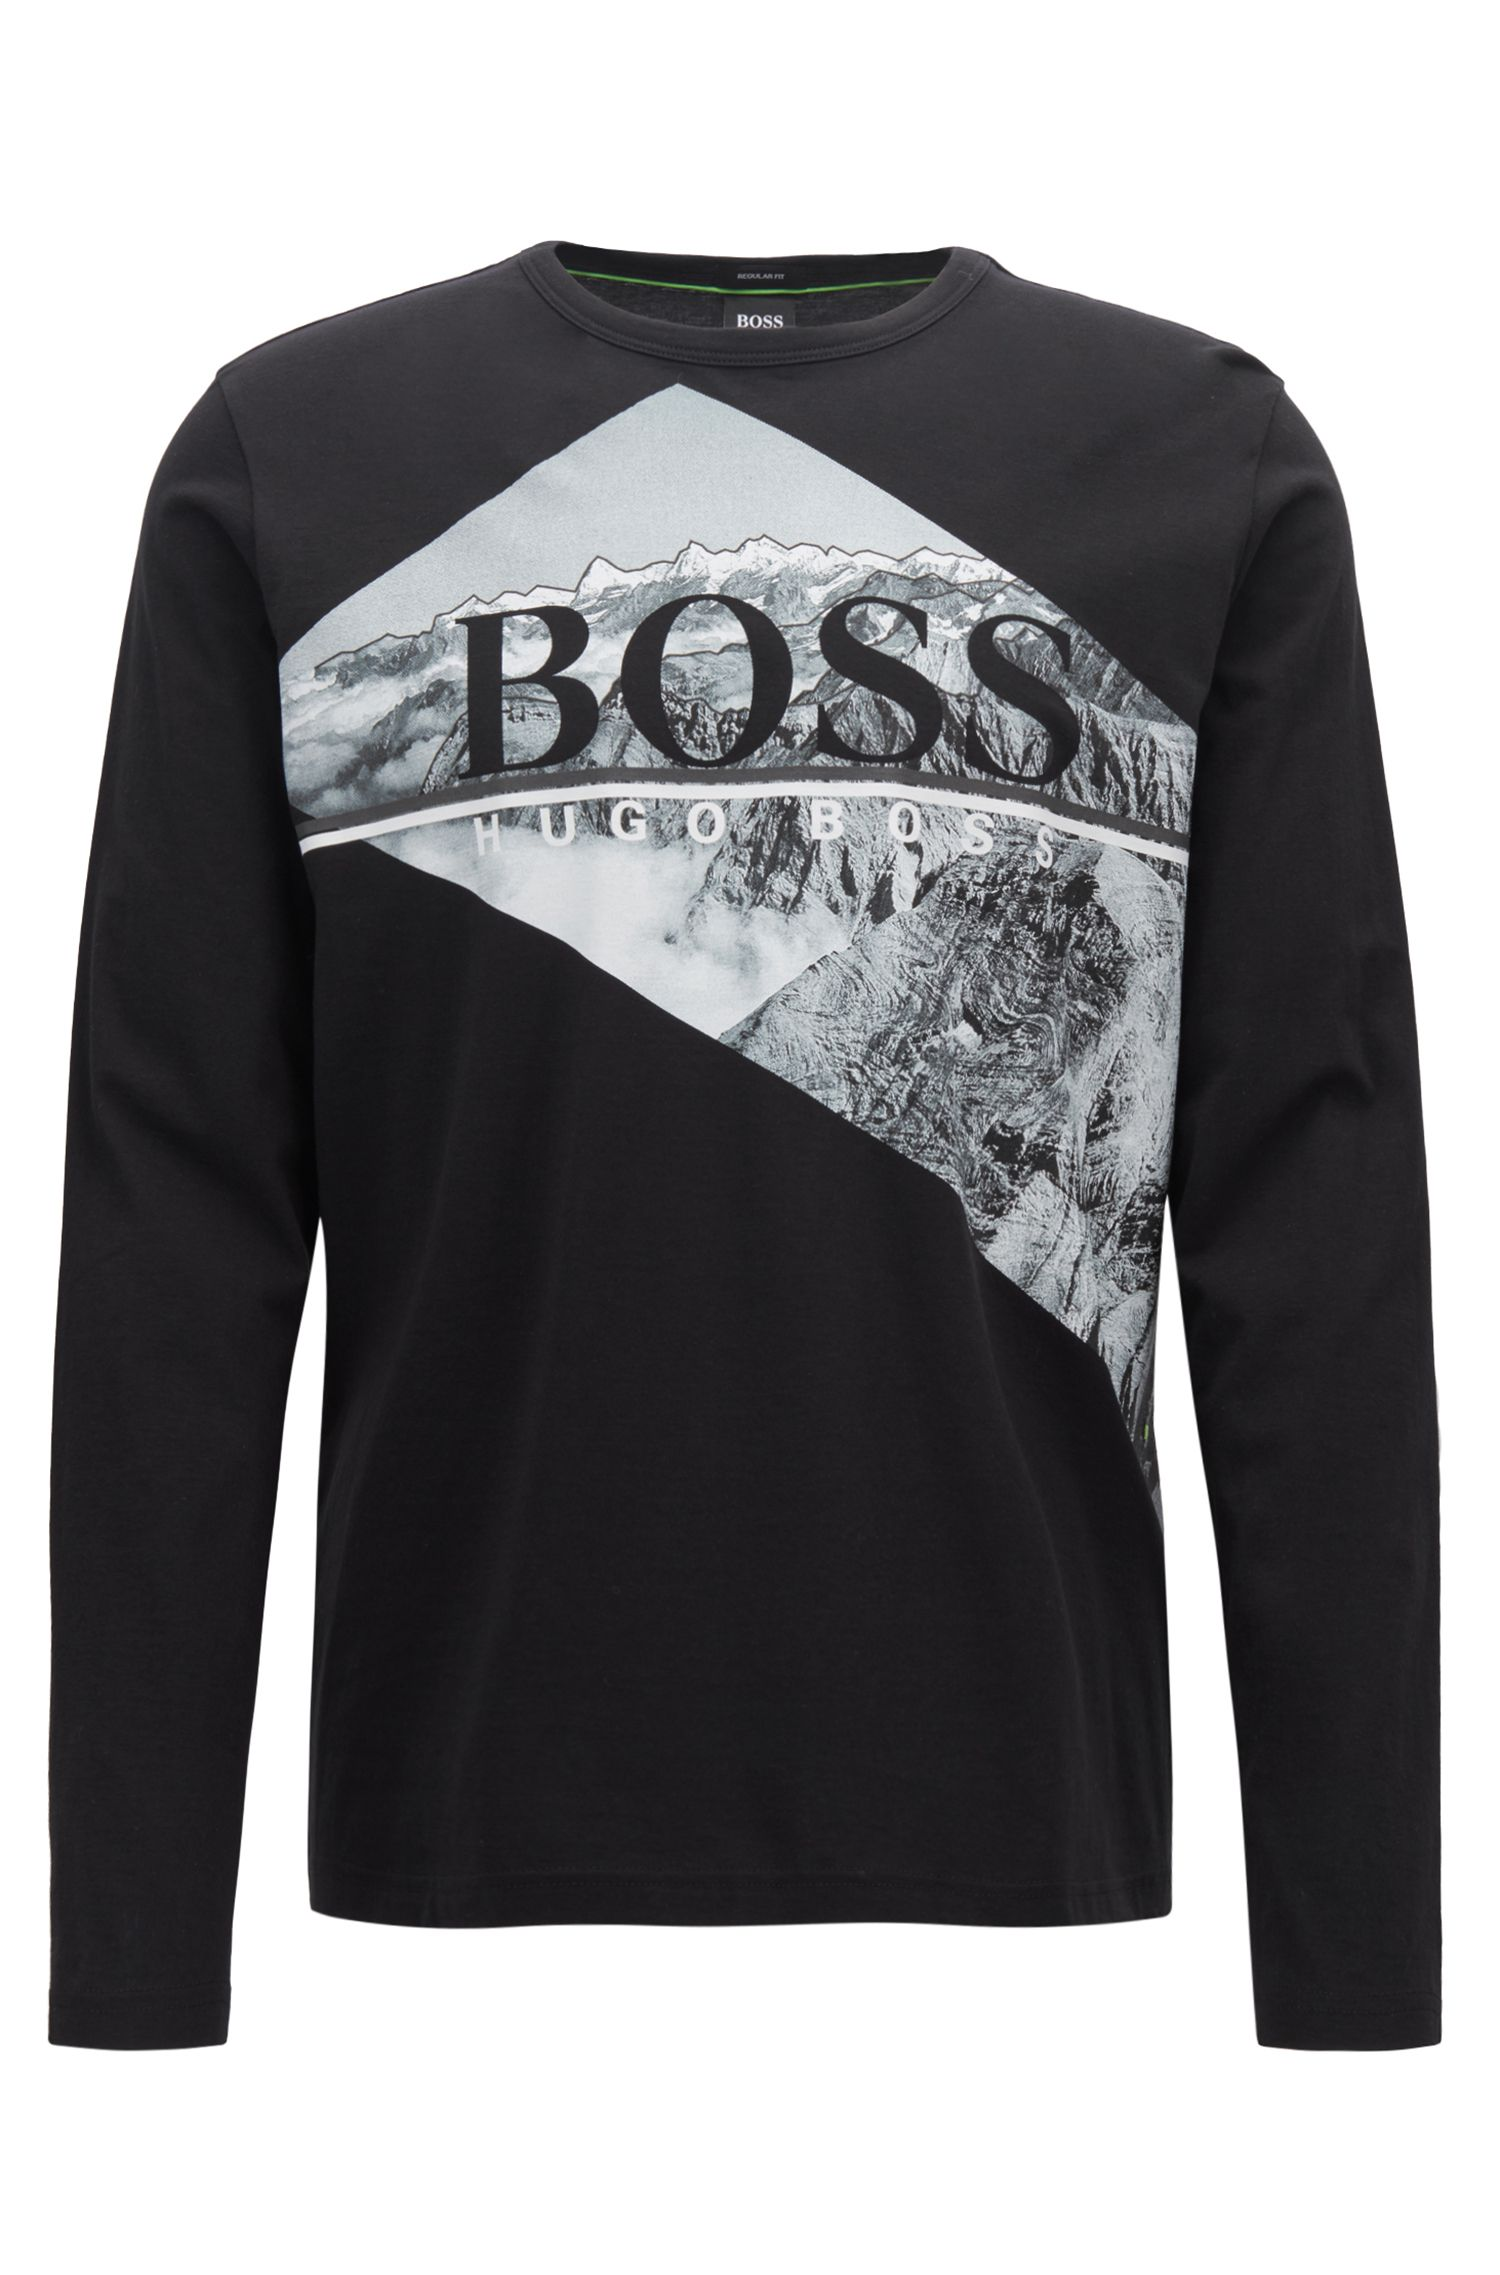 Long-sleeved T-shirt in cotton with photographic logo print, Black